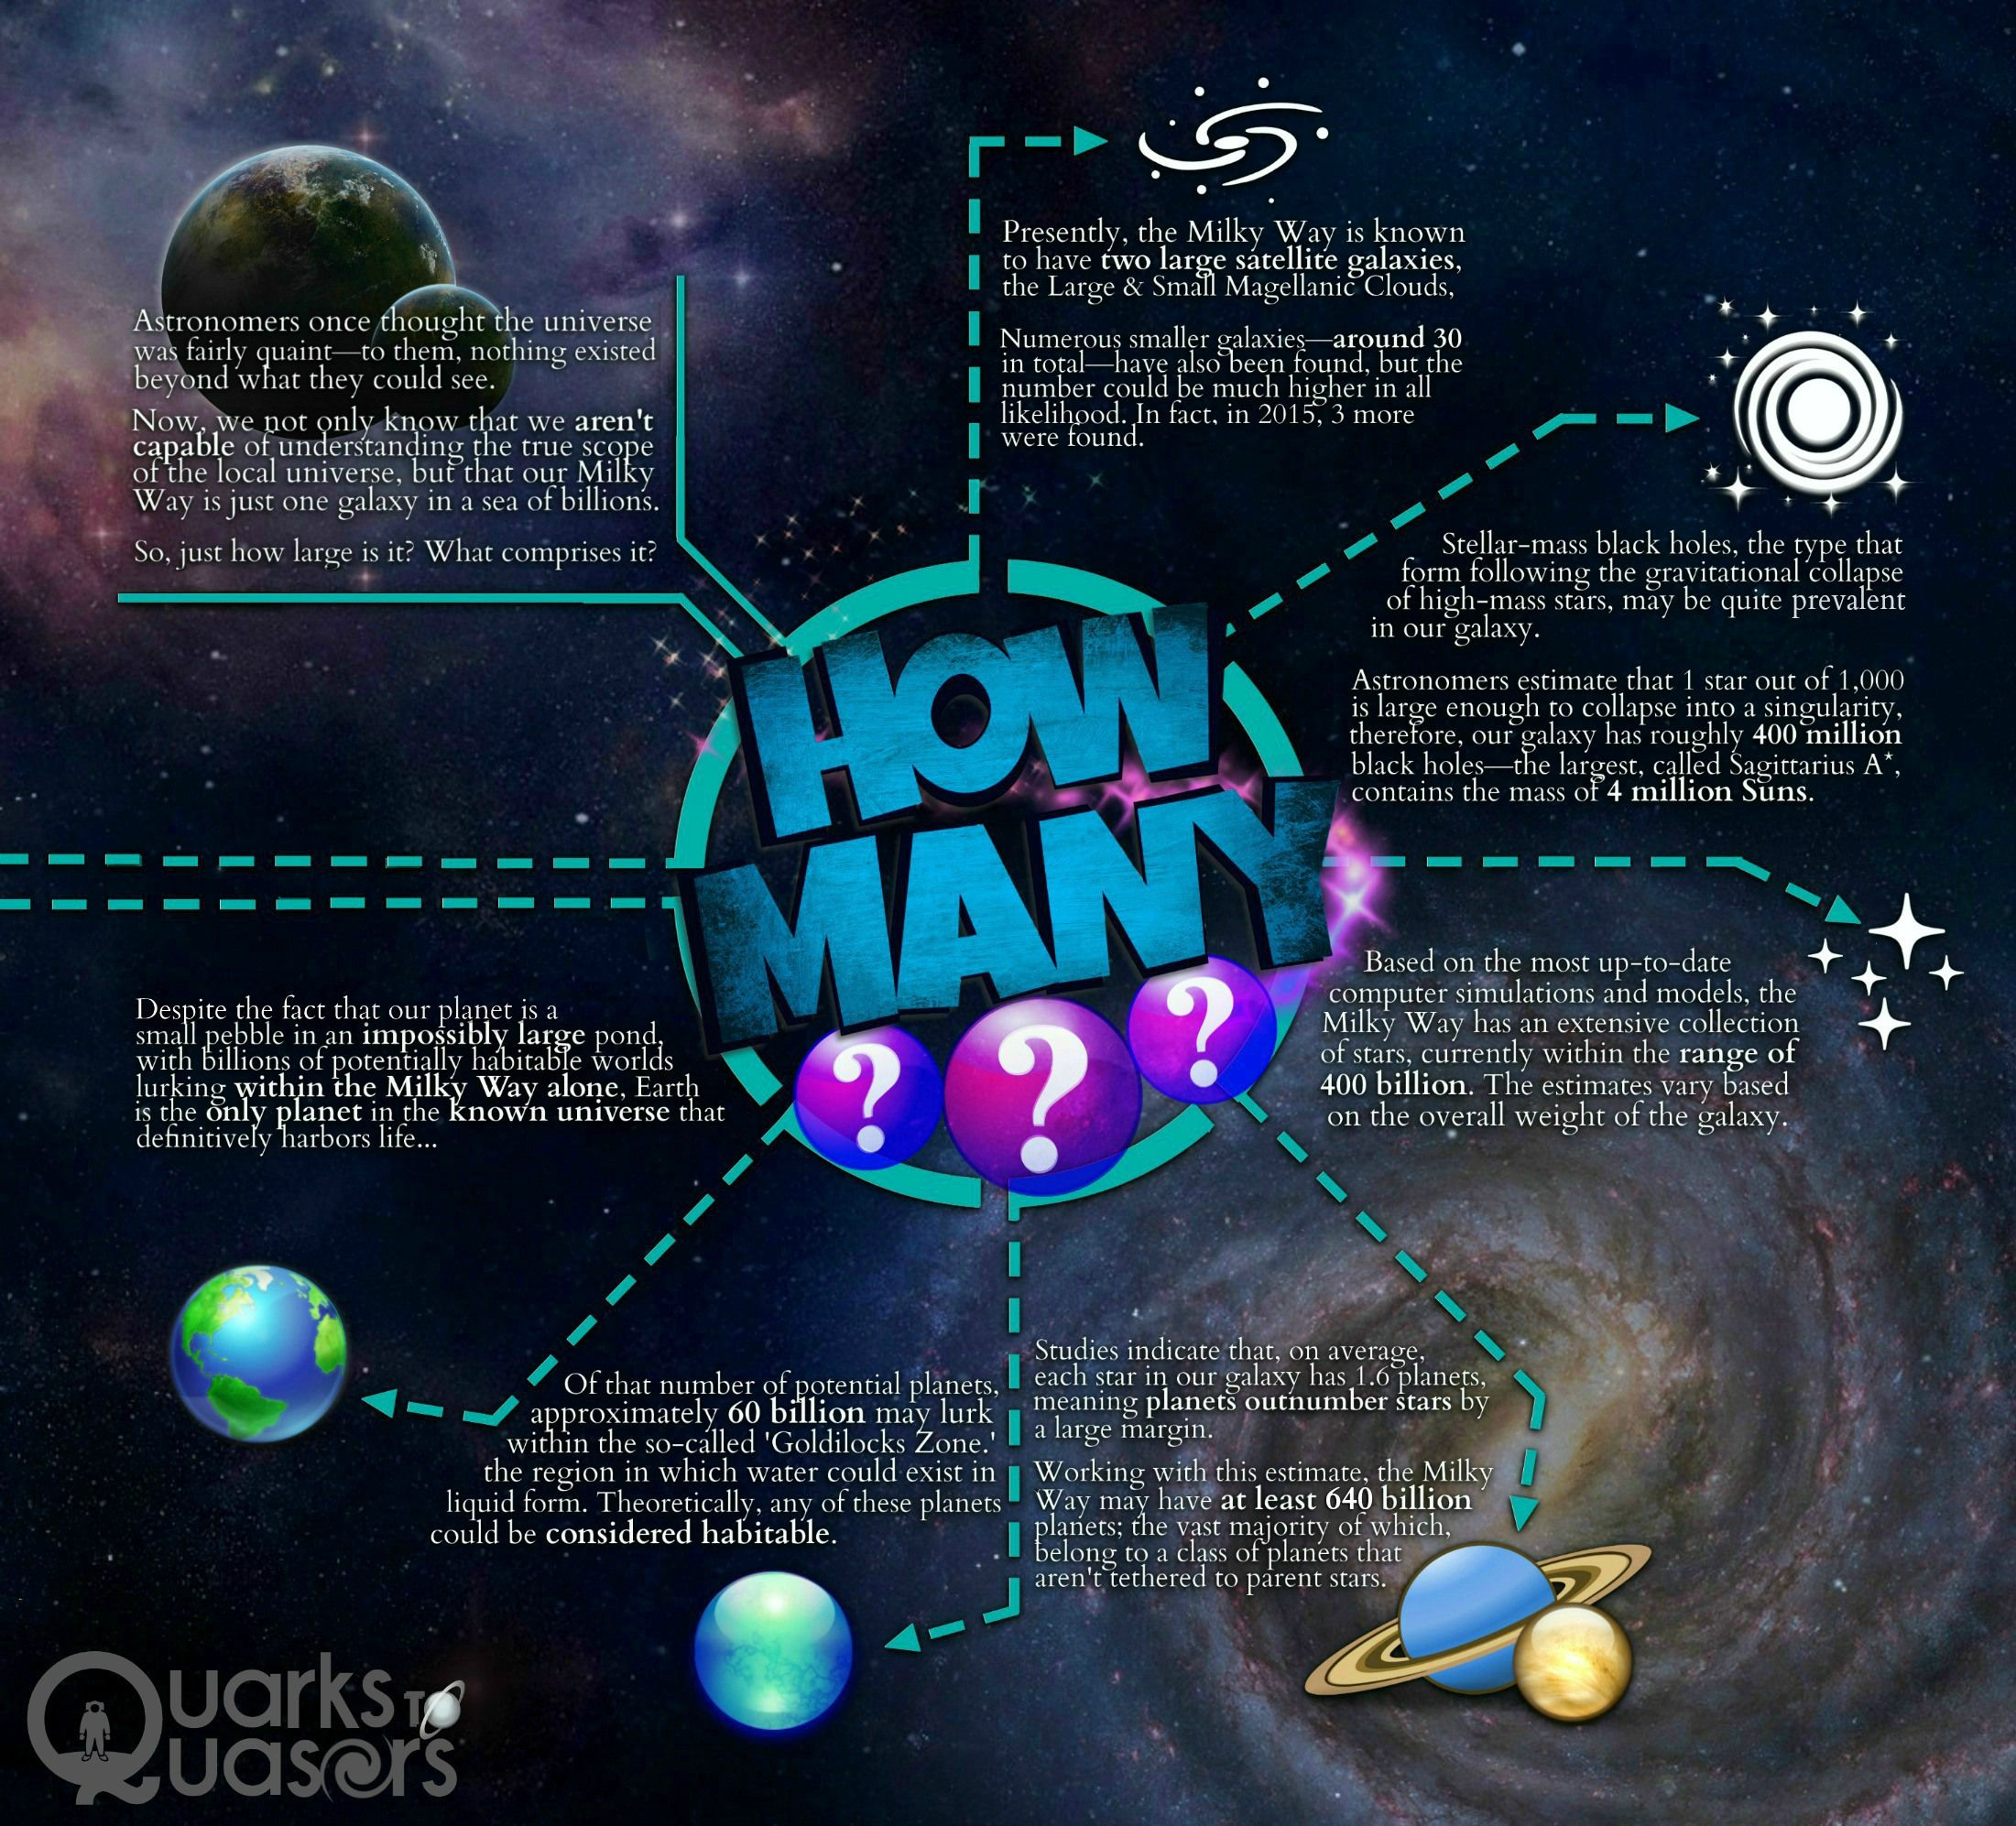 How Many Stars Planets And Black Holes Are In The Milky Way Galaxy Infographic Milky Way Galaxy Milky Way Galaxies